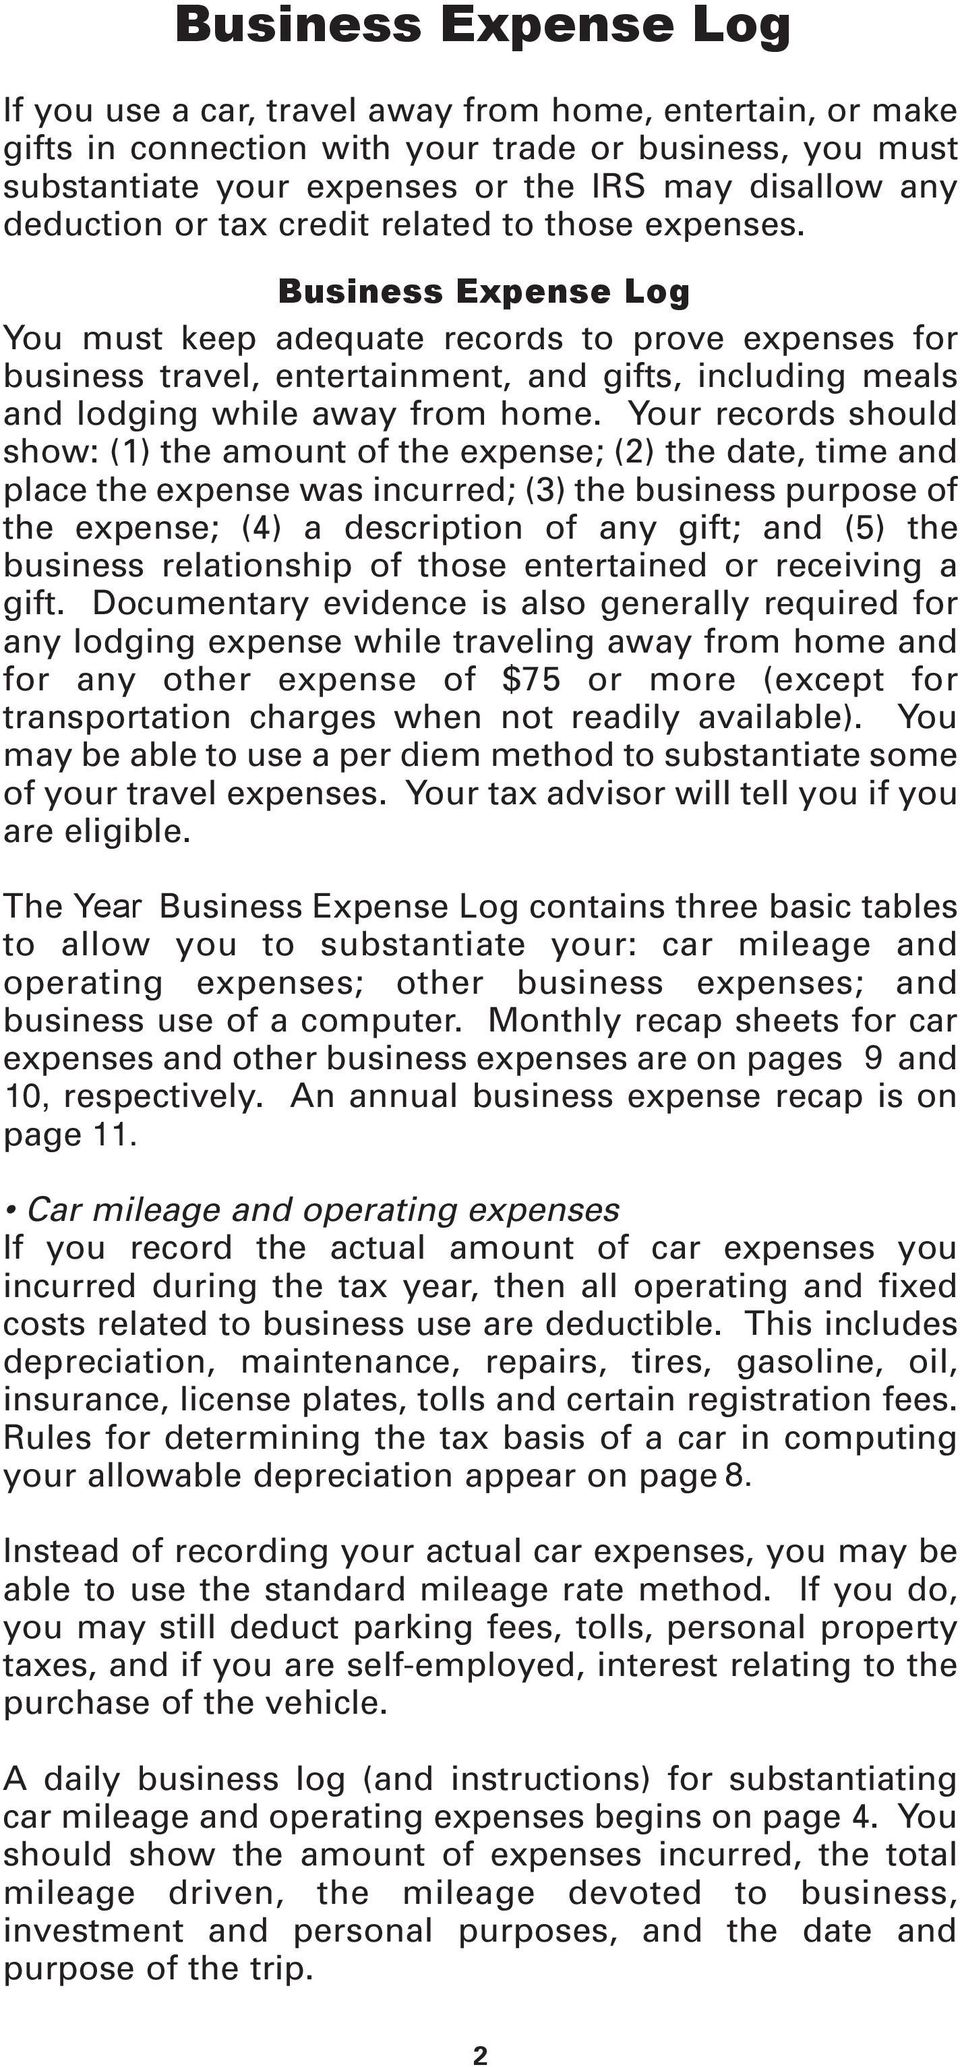 Overview Business of Expense Basic Rules Log You must keep adequate records to prove expenses for business travel, entertainment, and gifts, including meals and lodging while away from home.